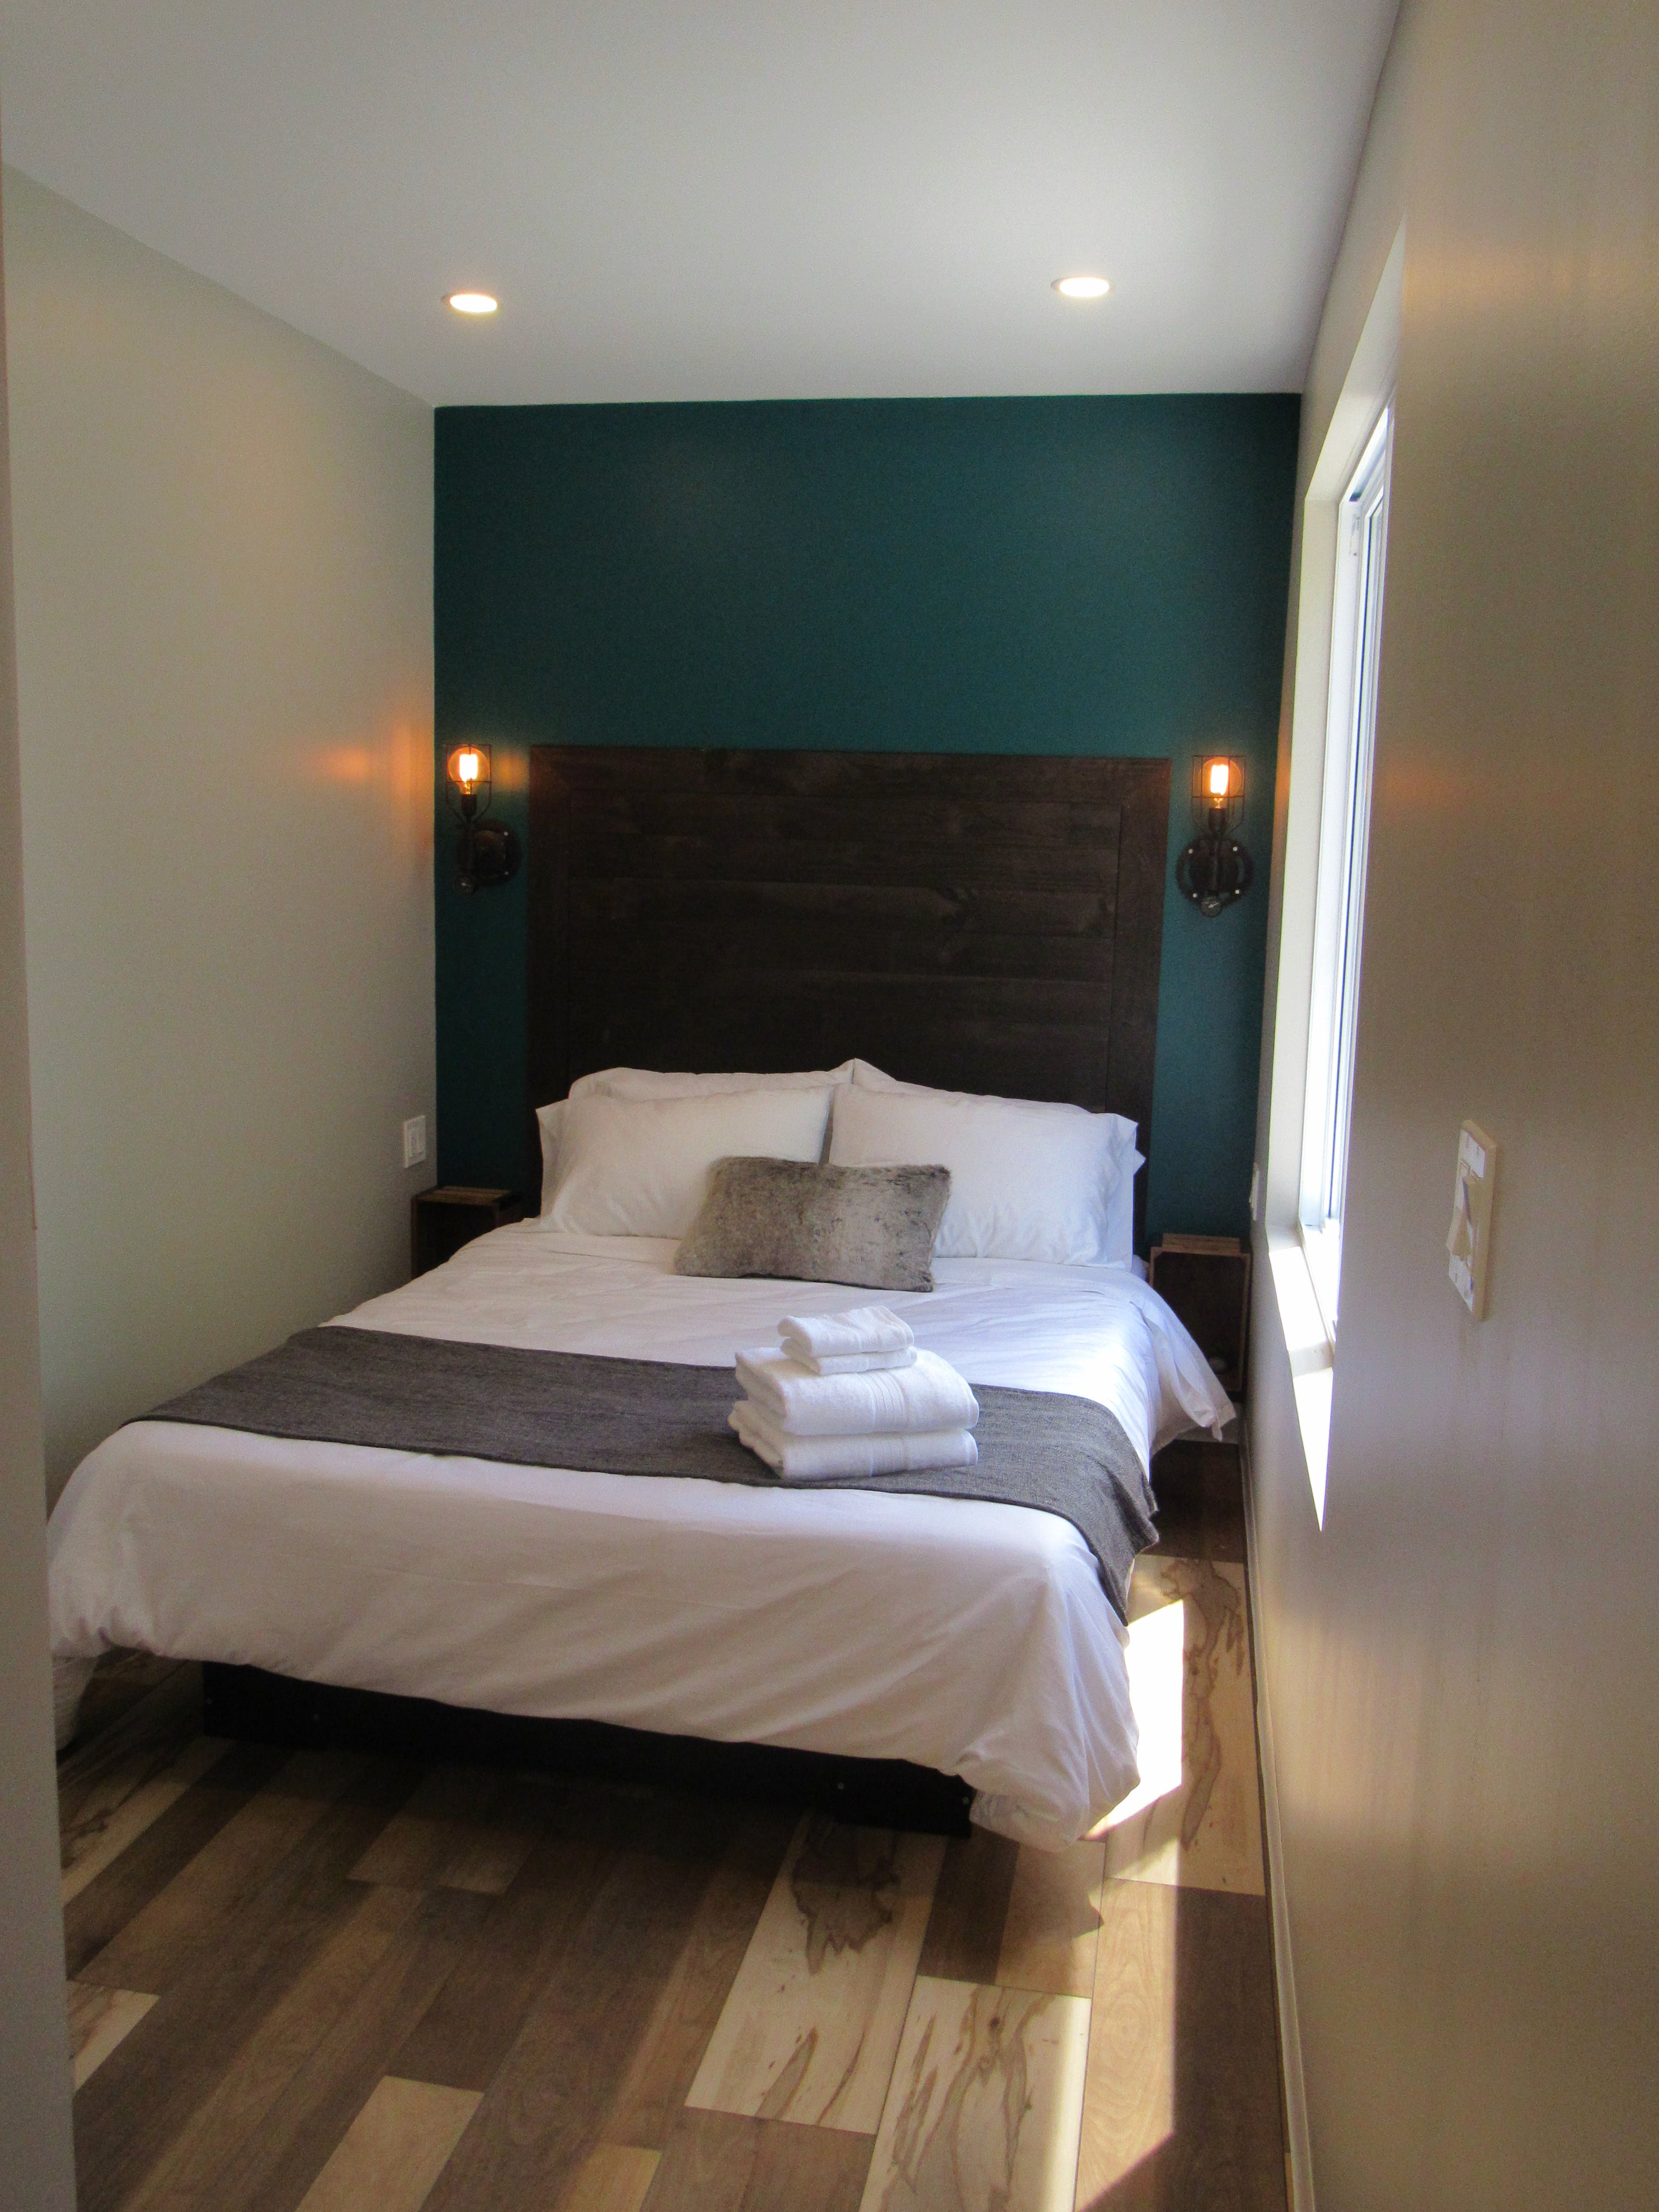 St. Jacobs Suite - has a rich wood headboard.